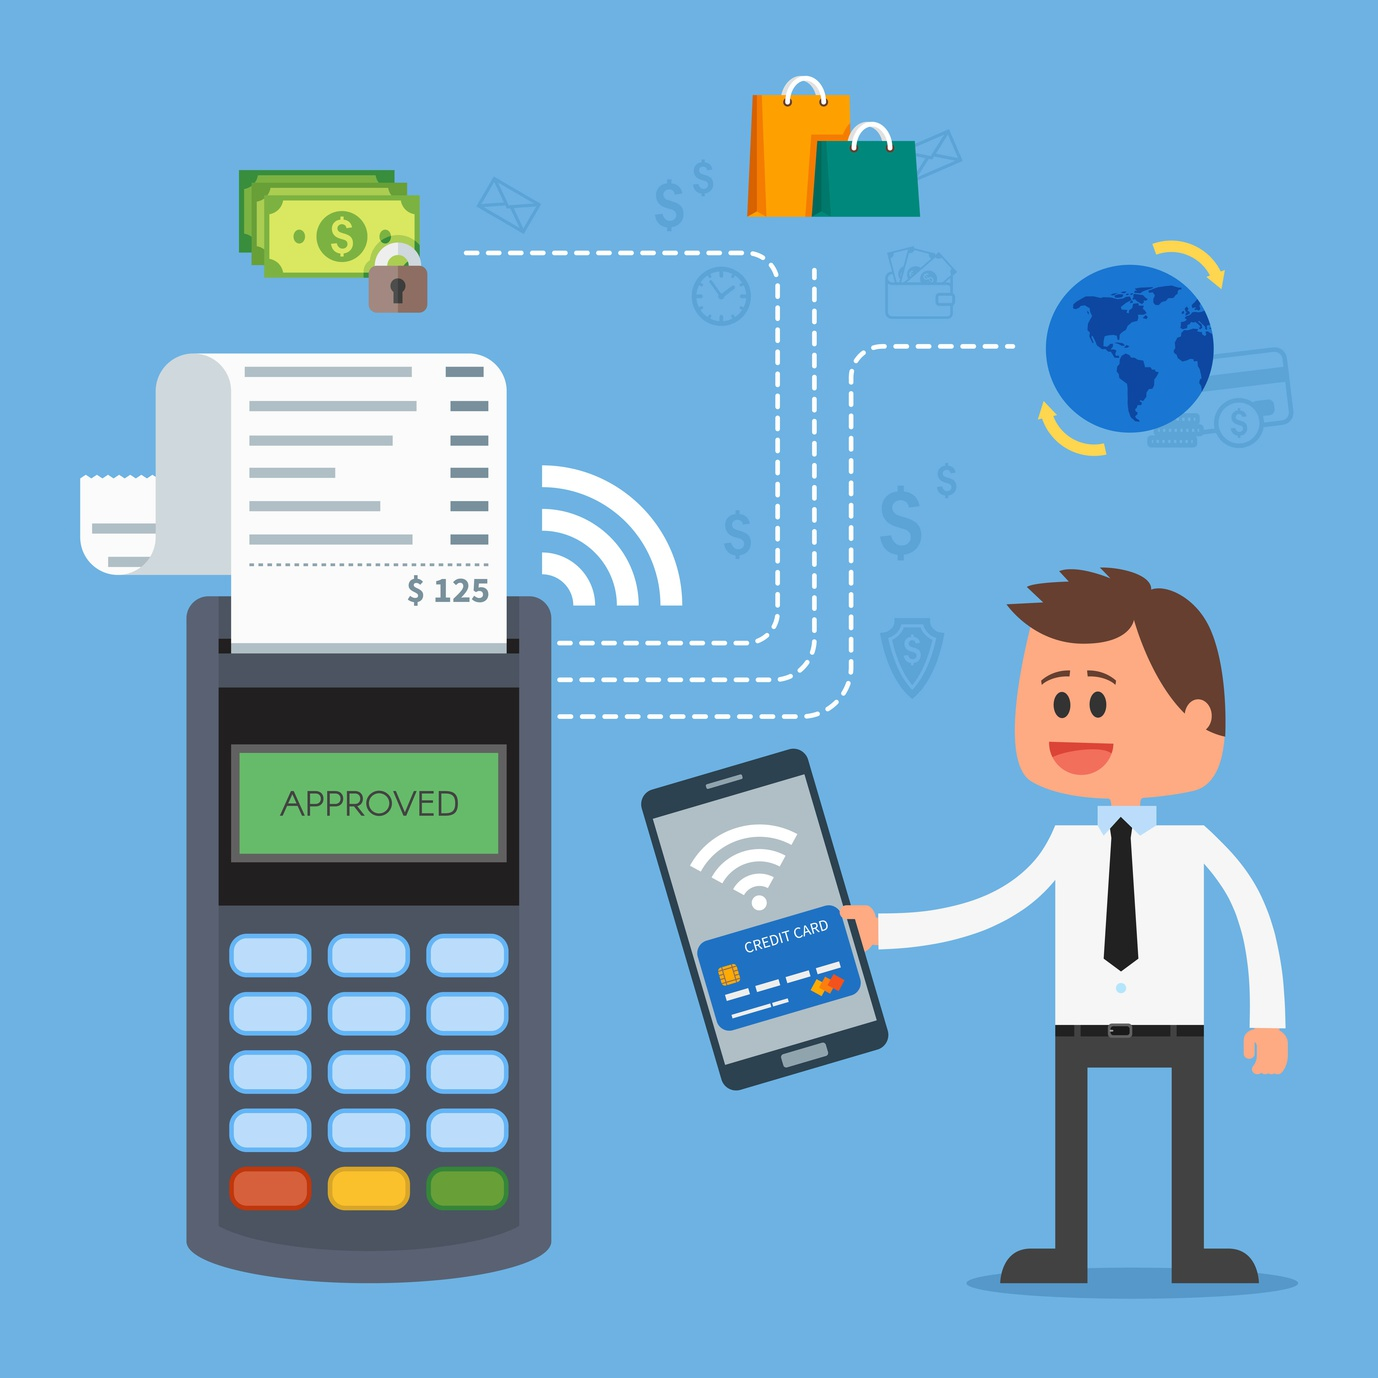 Stripe Looks Beyond Payments For Merchants | PaymentsJournal